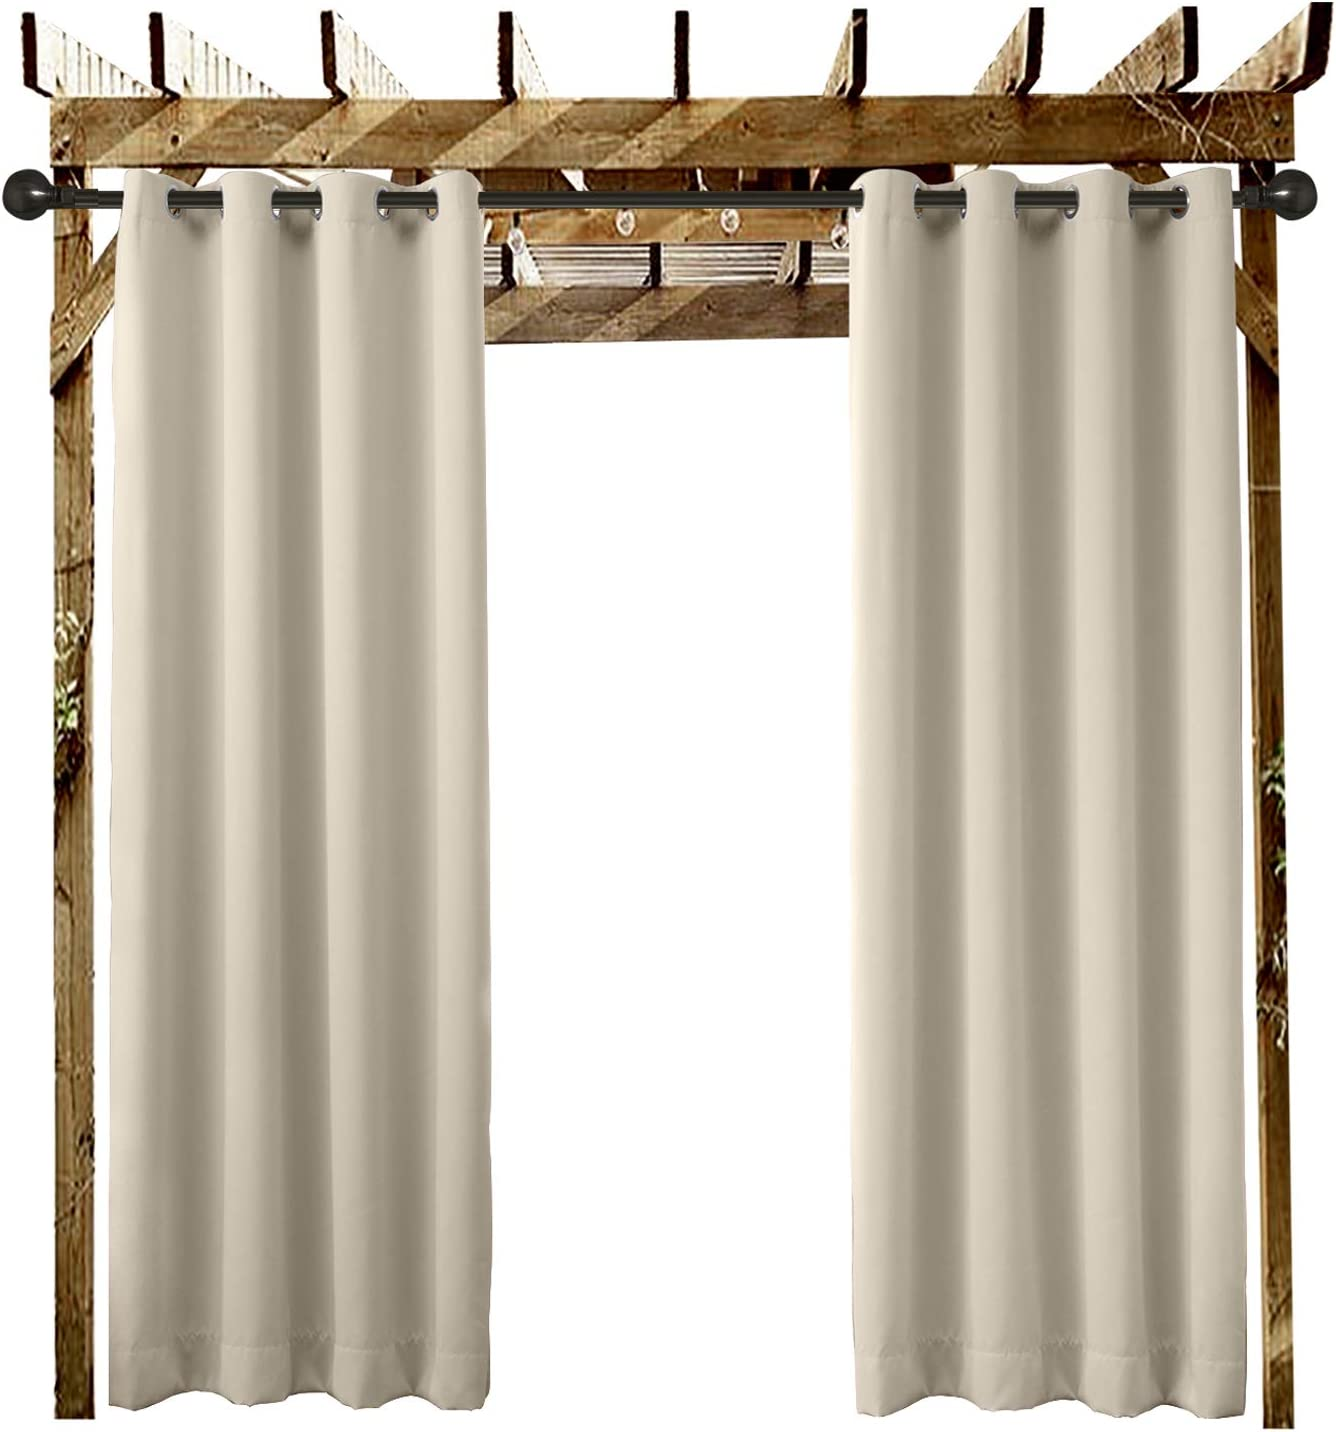 Outdoor Curtain Grommet Eyelet Beige 120 W x 84 L For Front Porch Pergola Cabana Dock Covered Patio . and Beach Home 1 Panel Gazebo